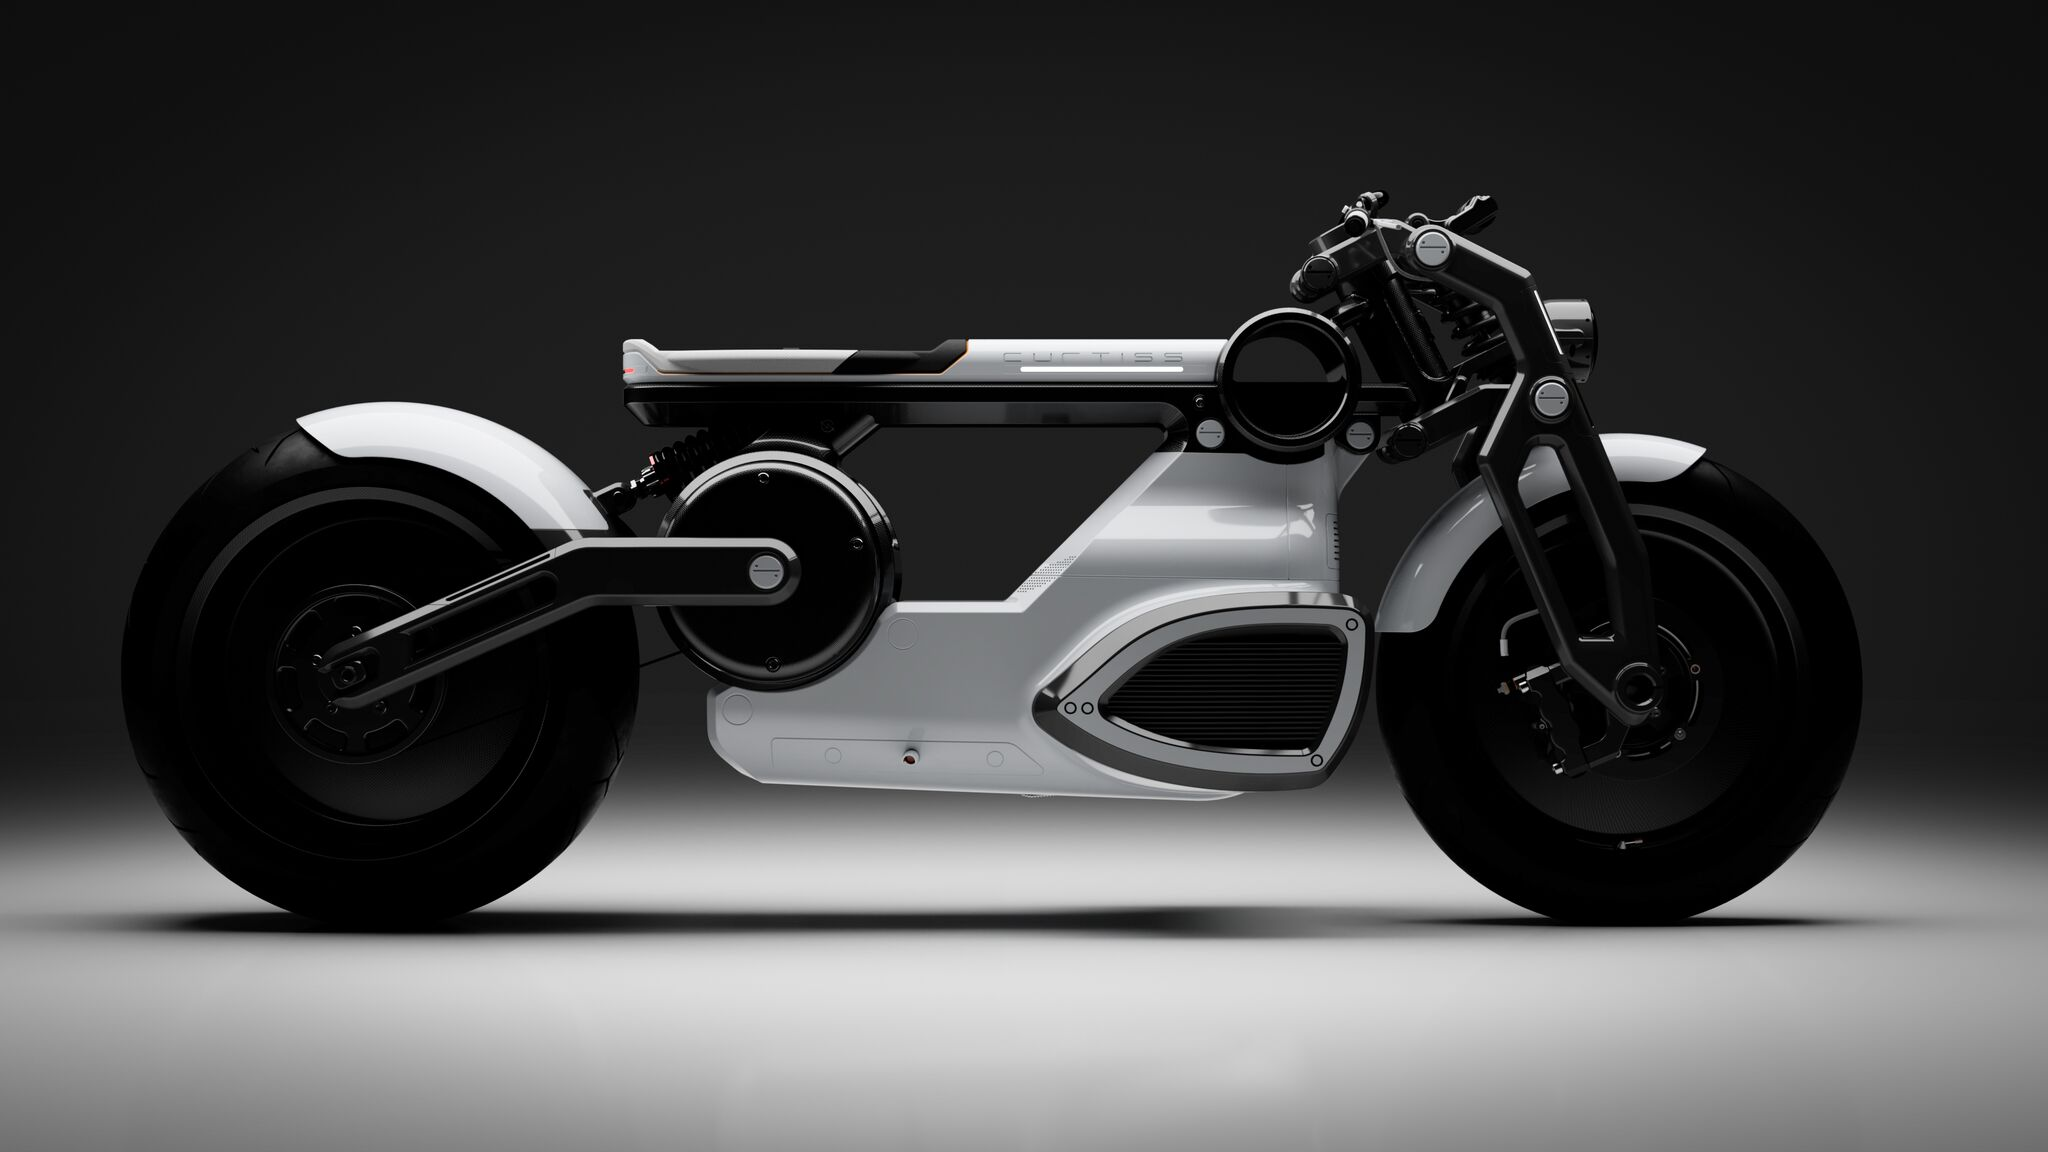 Zeus electric motorcycle gets two new designs in unveiling by Curtiss